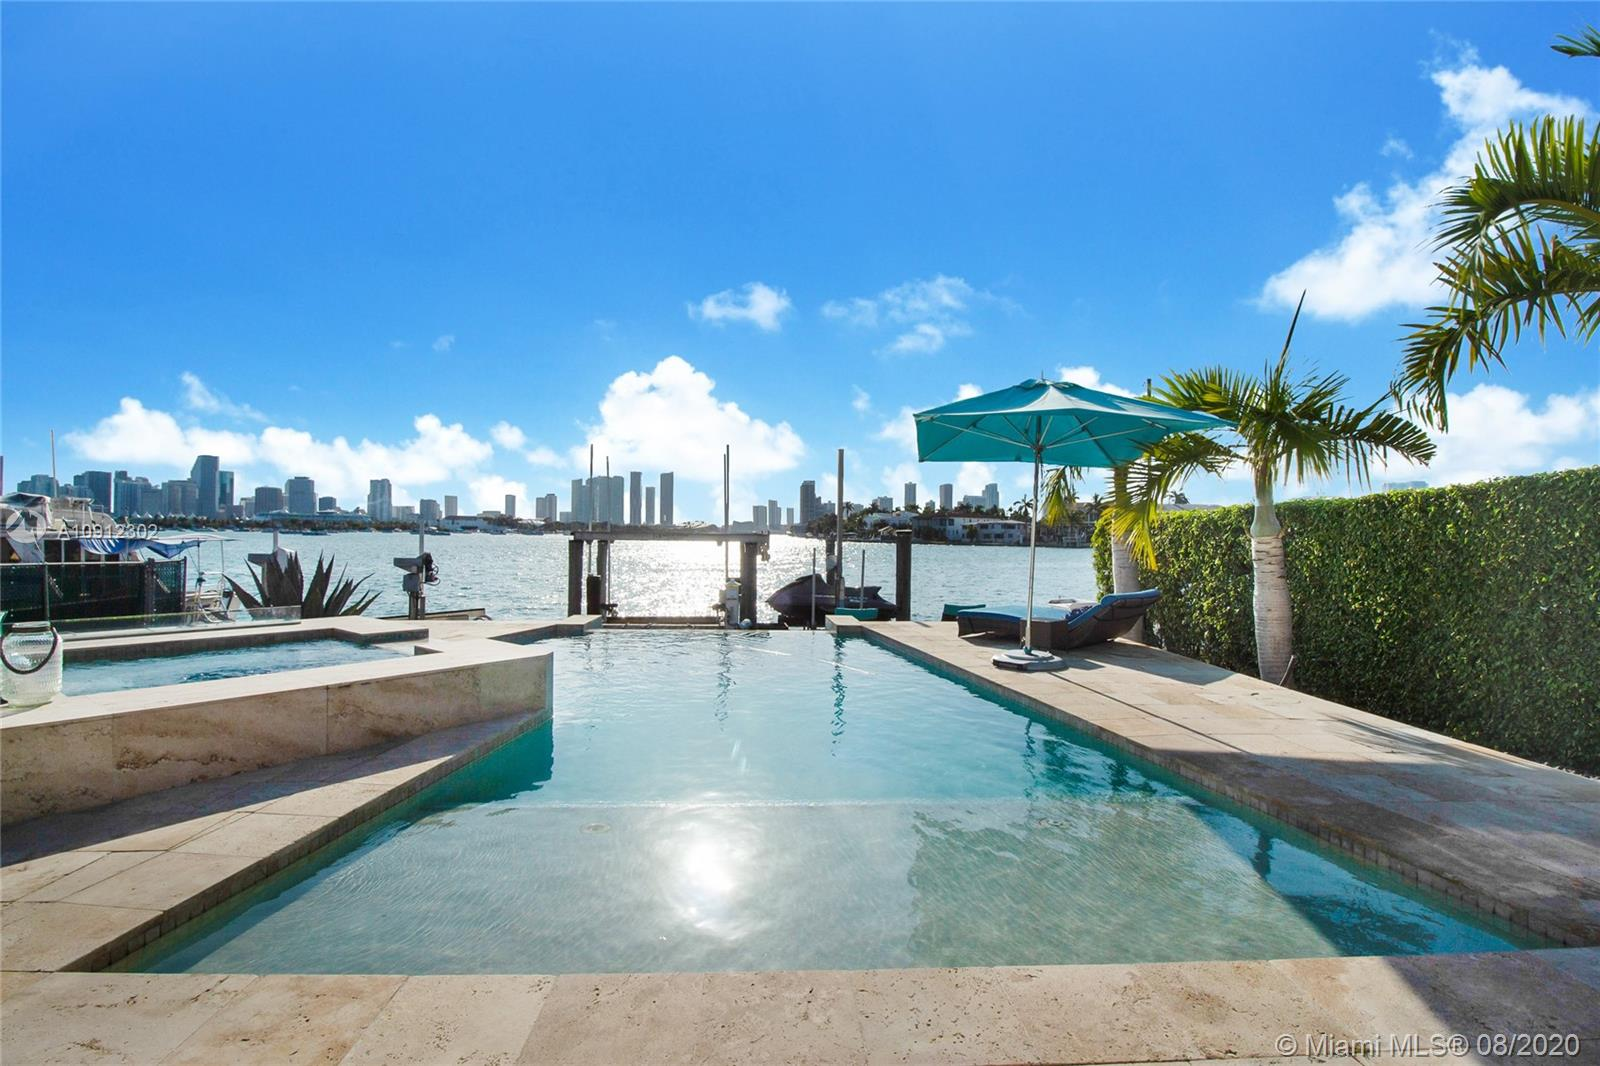 114 W San Marino Dr Luxury Real Estate